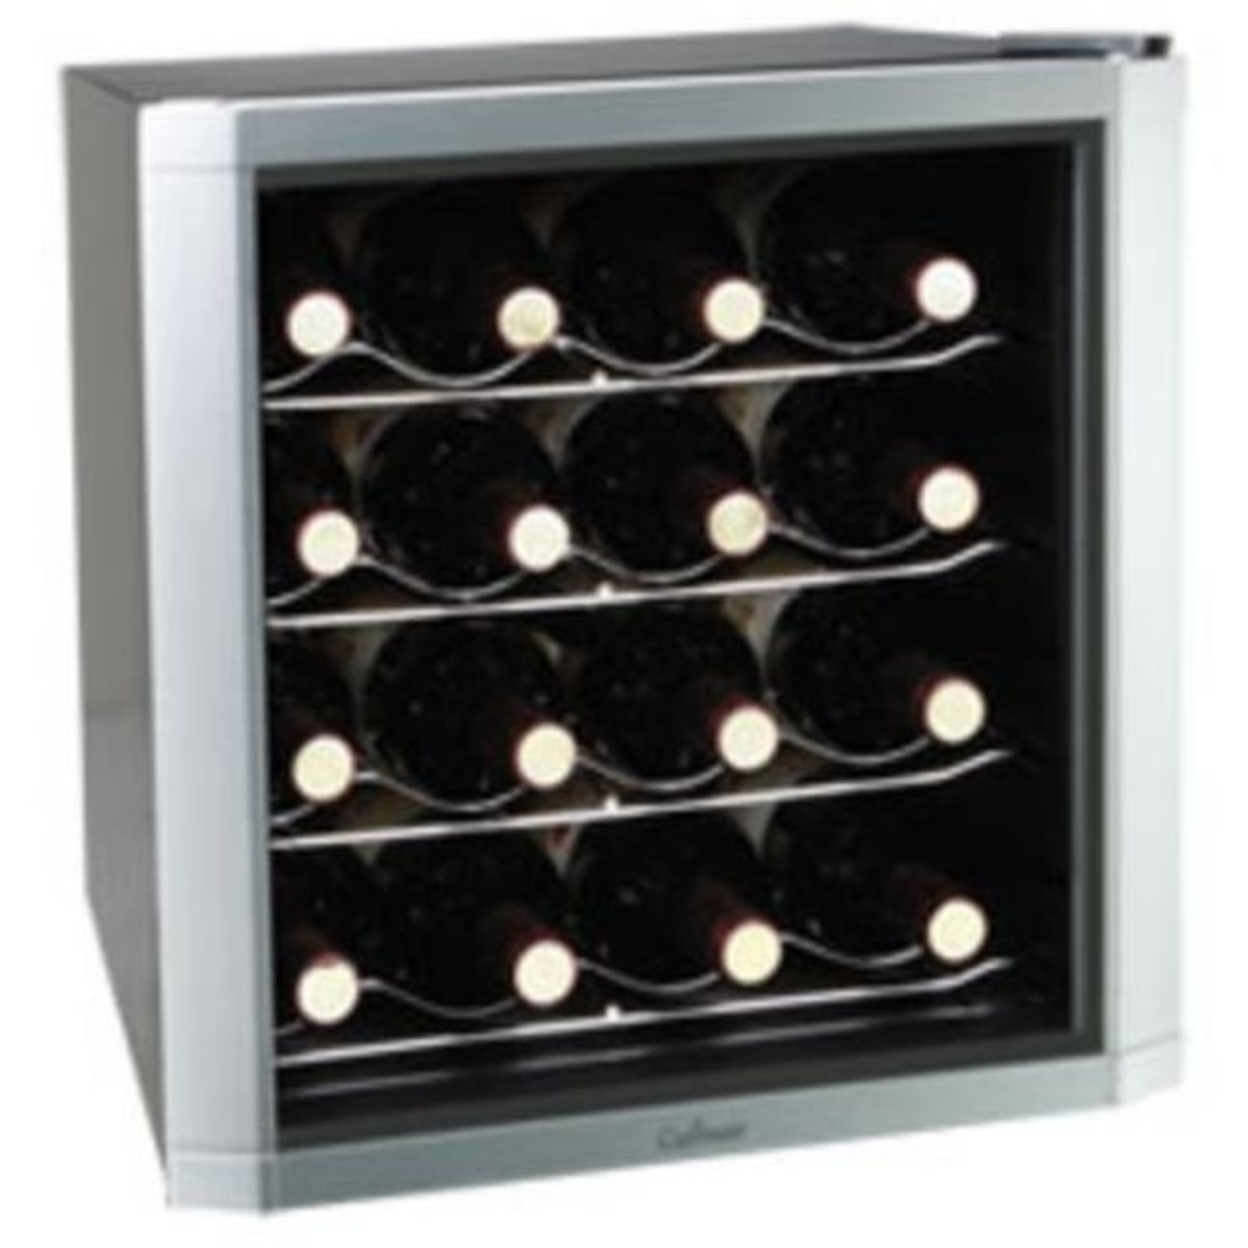 Culinair Wine Cooler 16 Bottle Thermoelectric - Silver - Aw162S